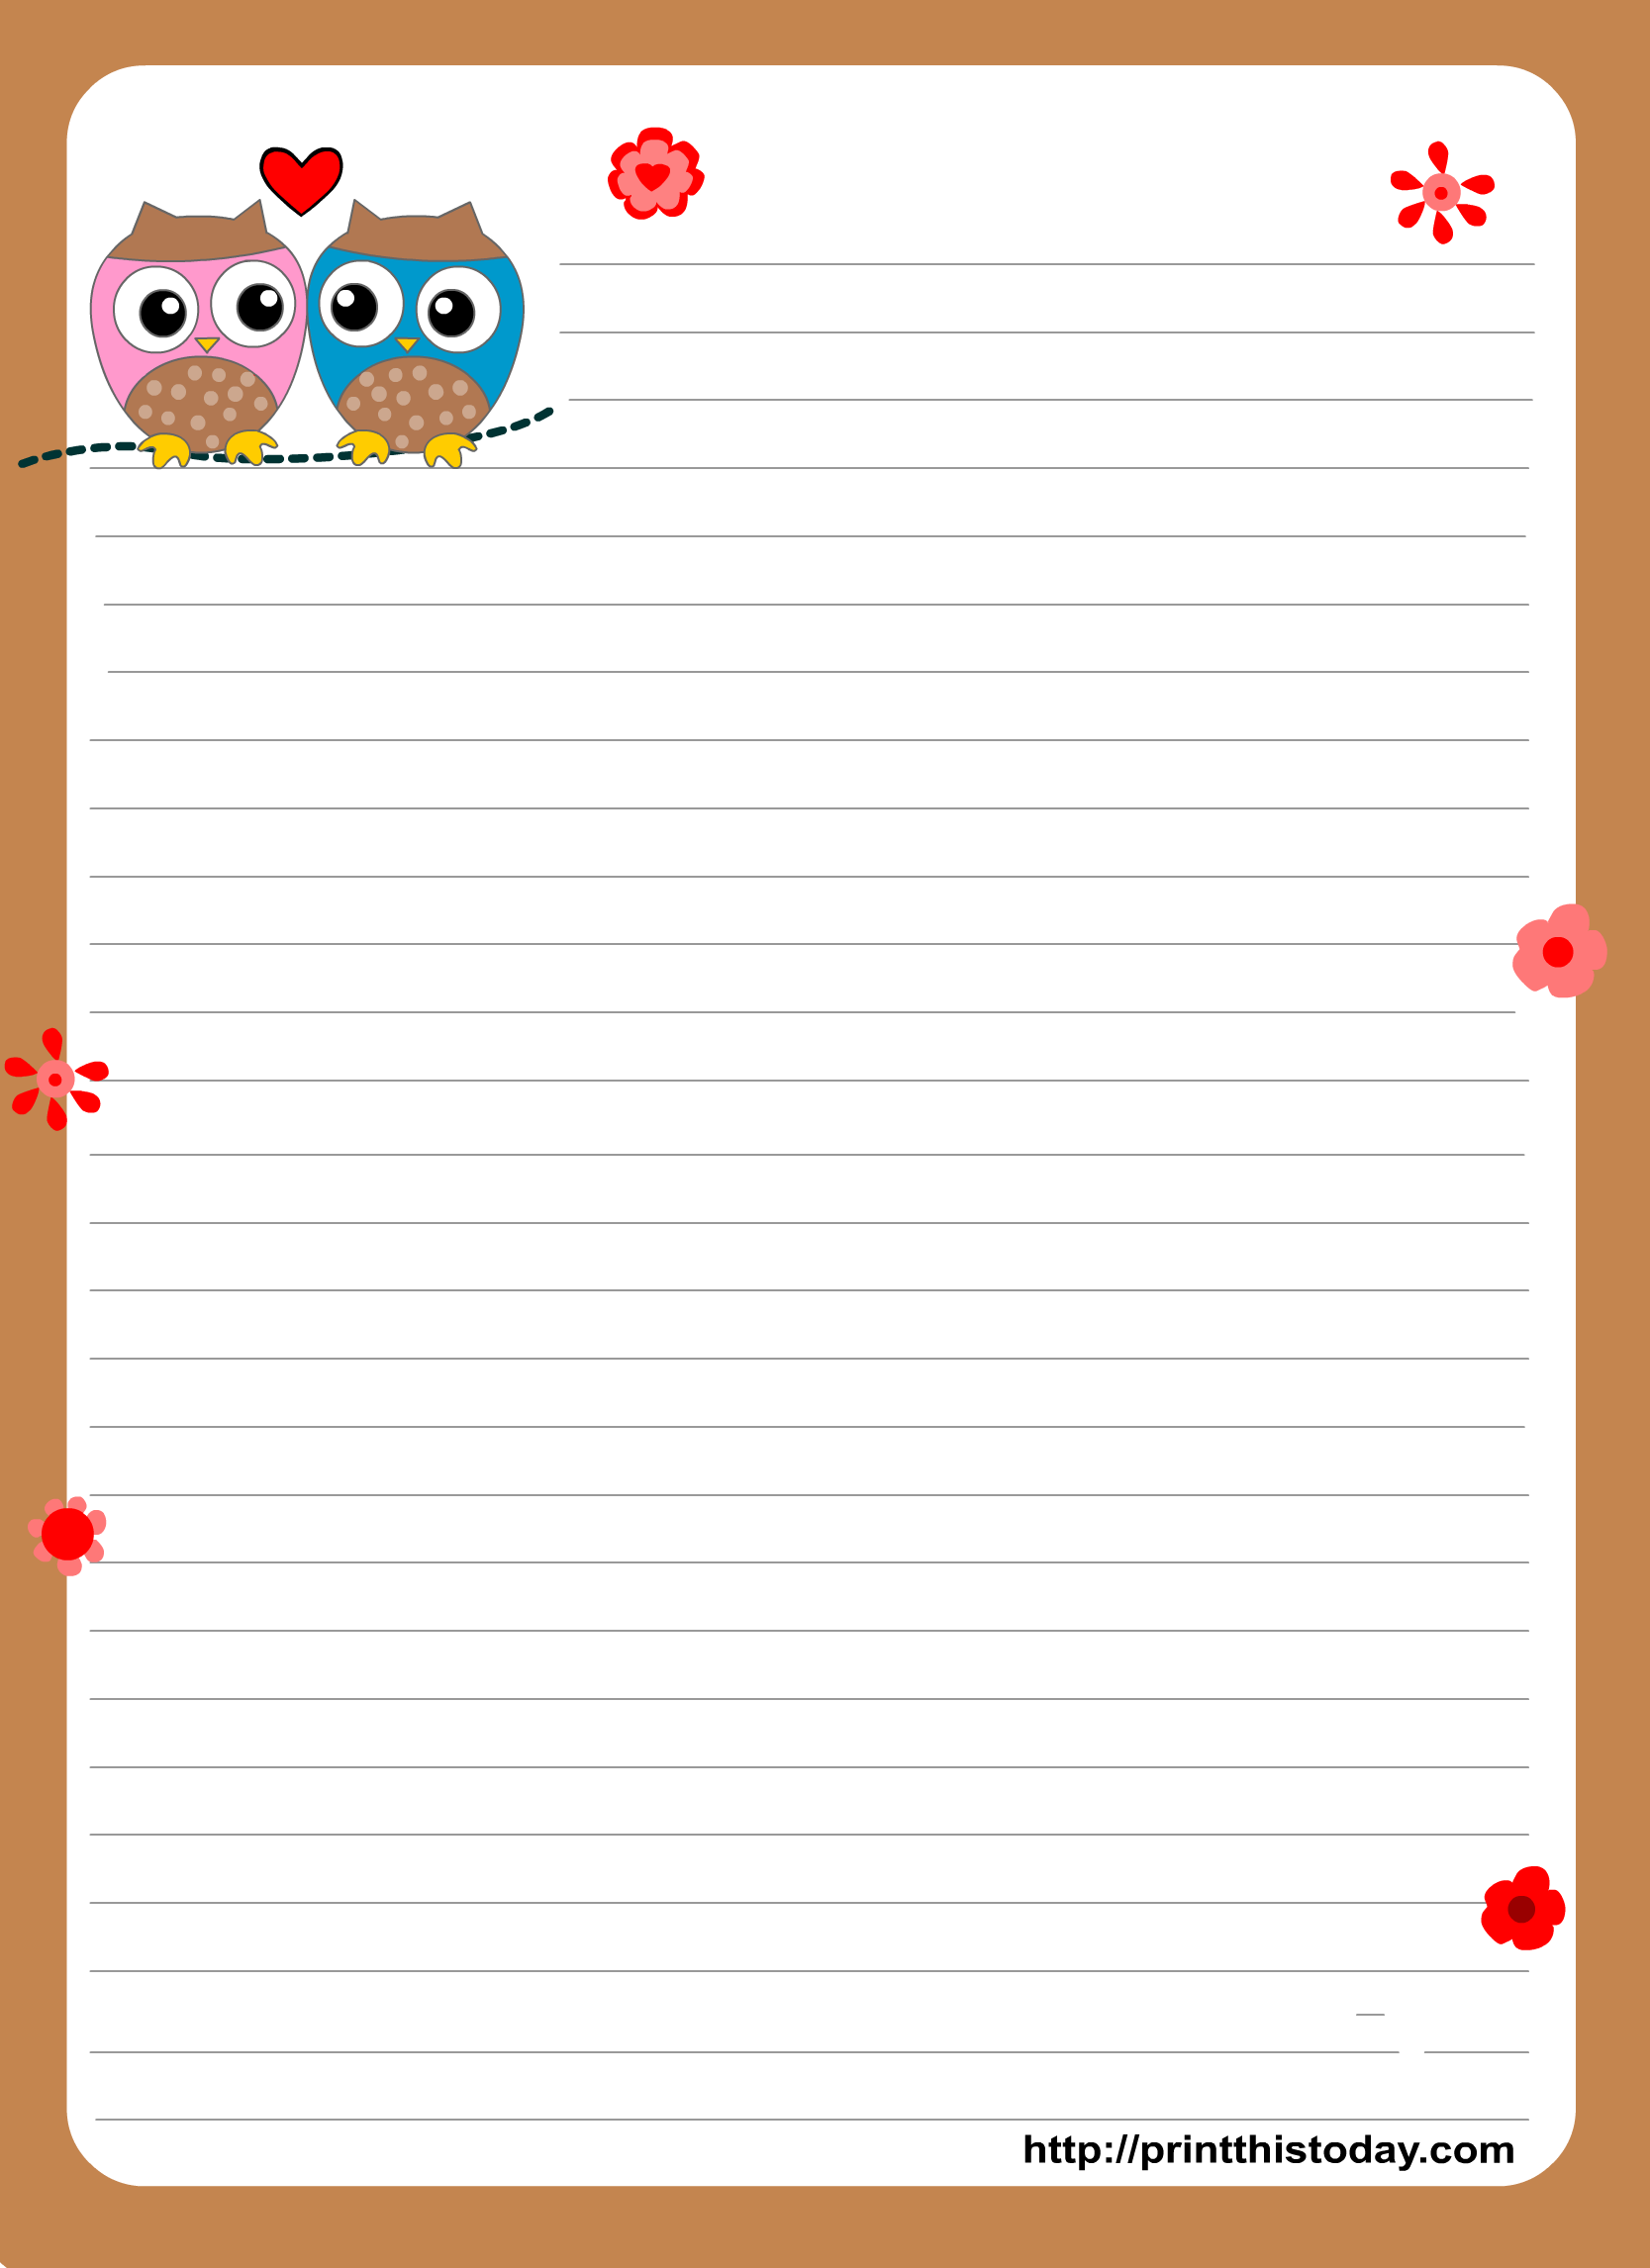 Design paper for writing